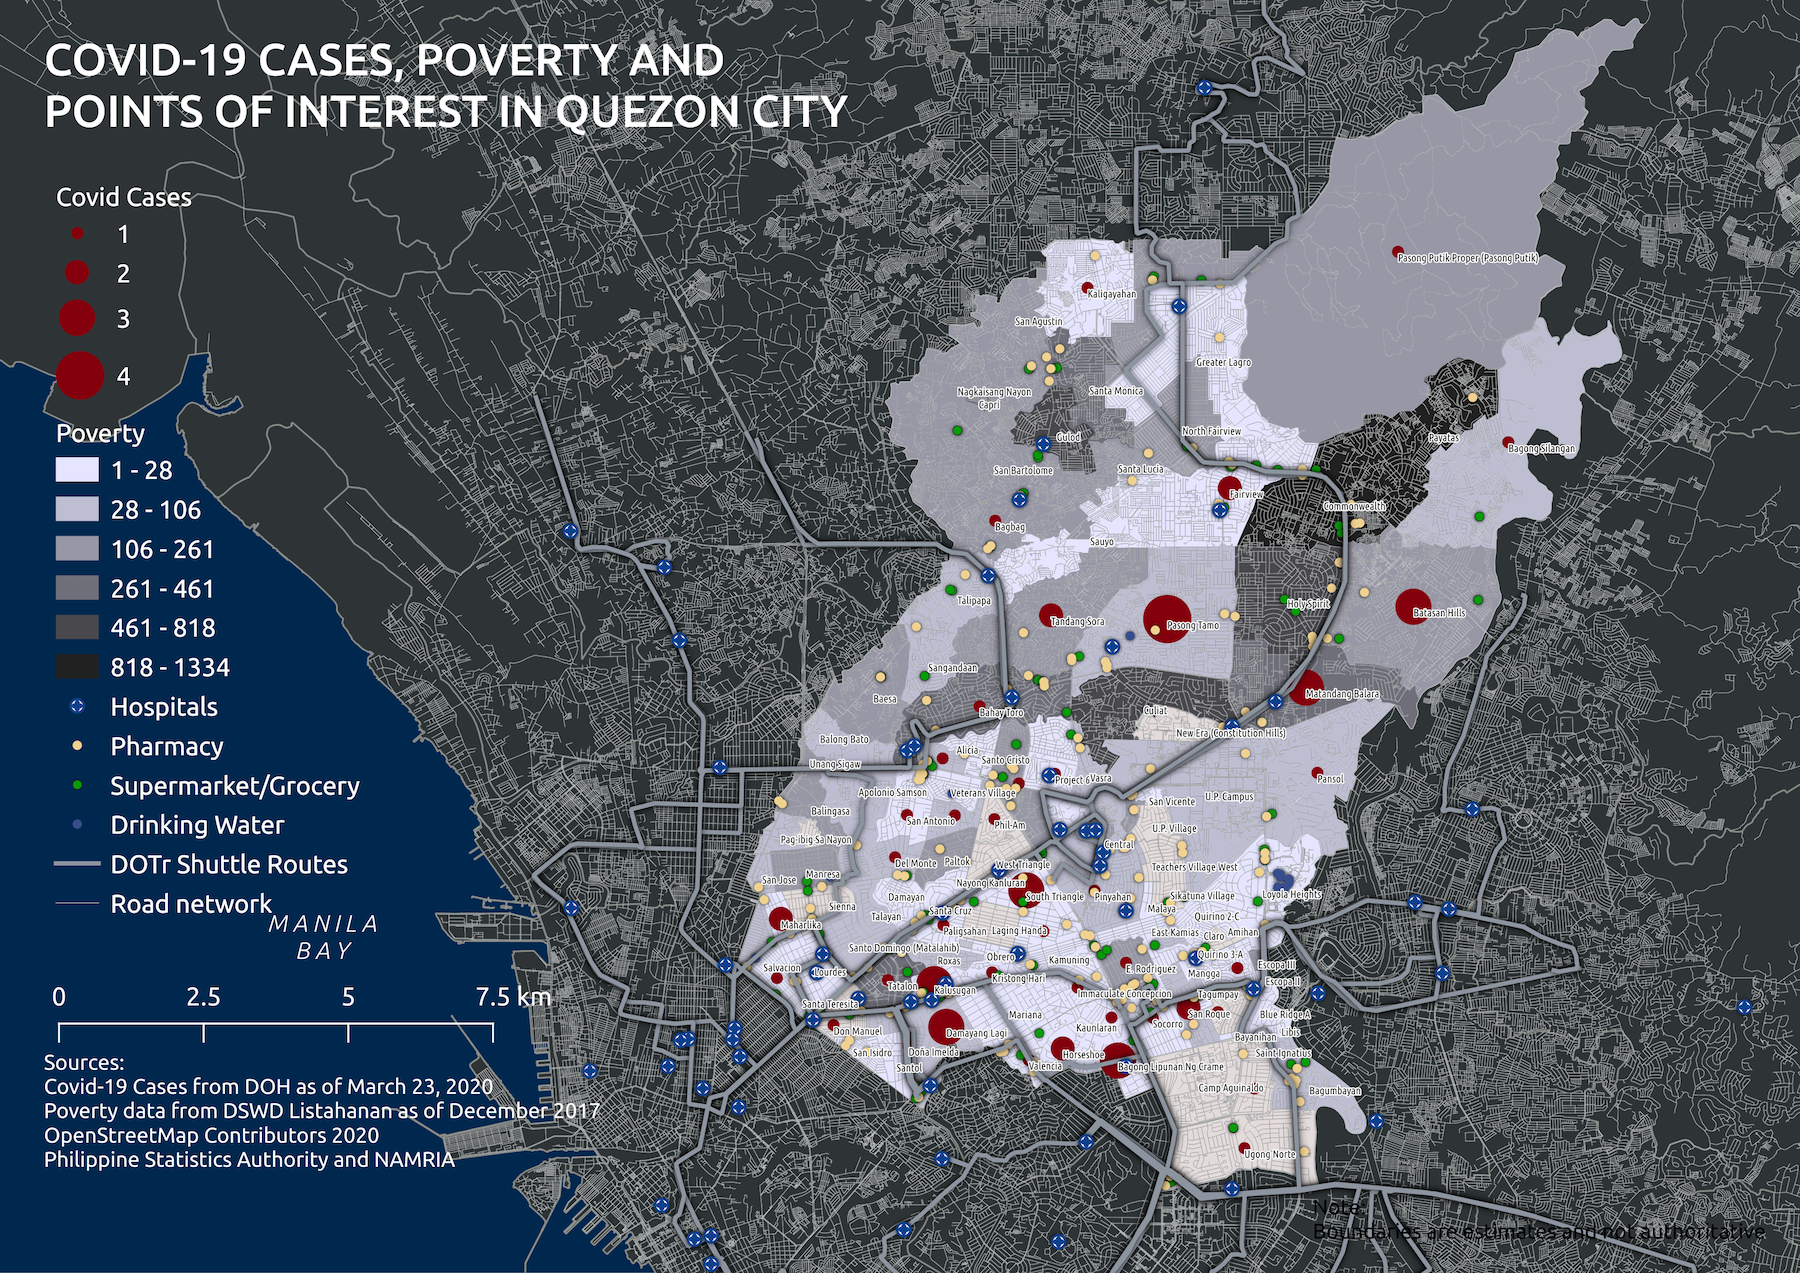 Map 2. QC Poverty and Covid Cases March 23 2020